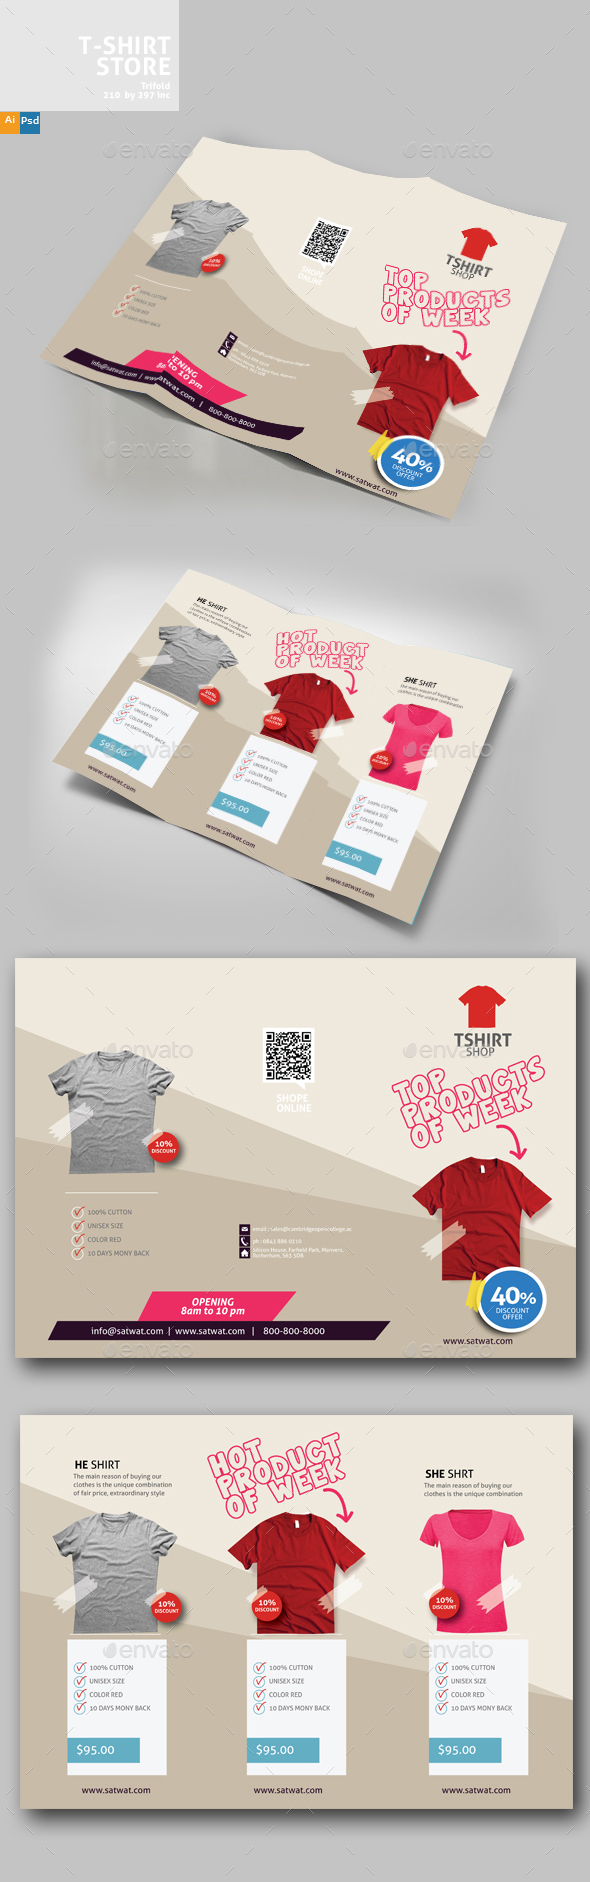 T-Shirt Store Trifold - Brochures Print Templates